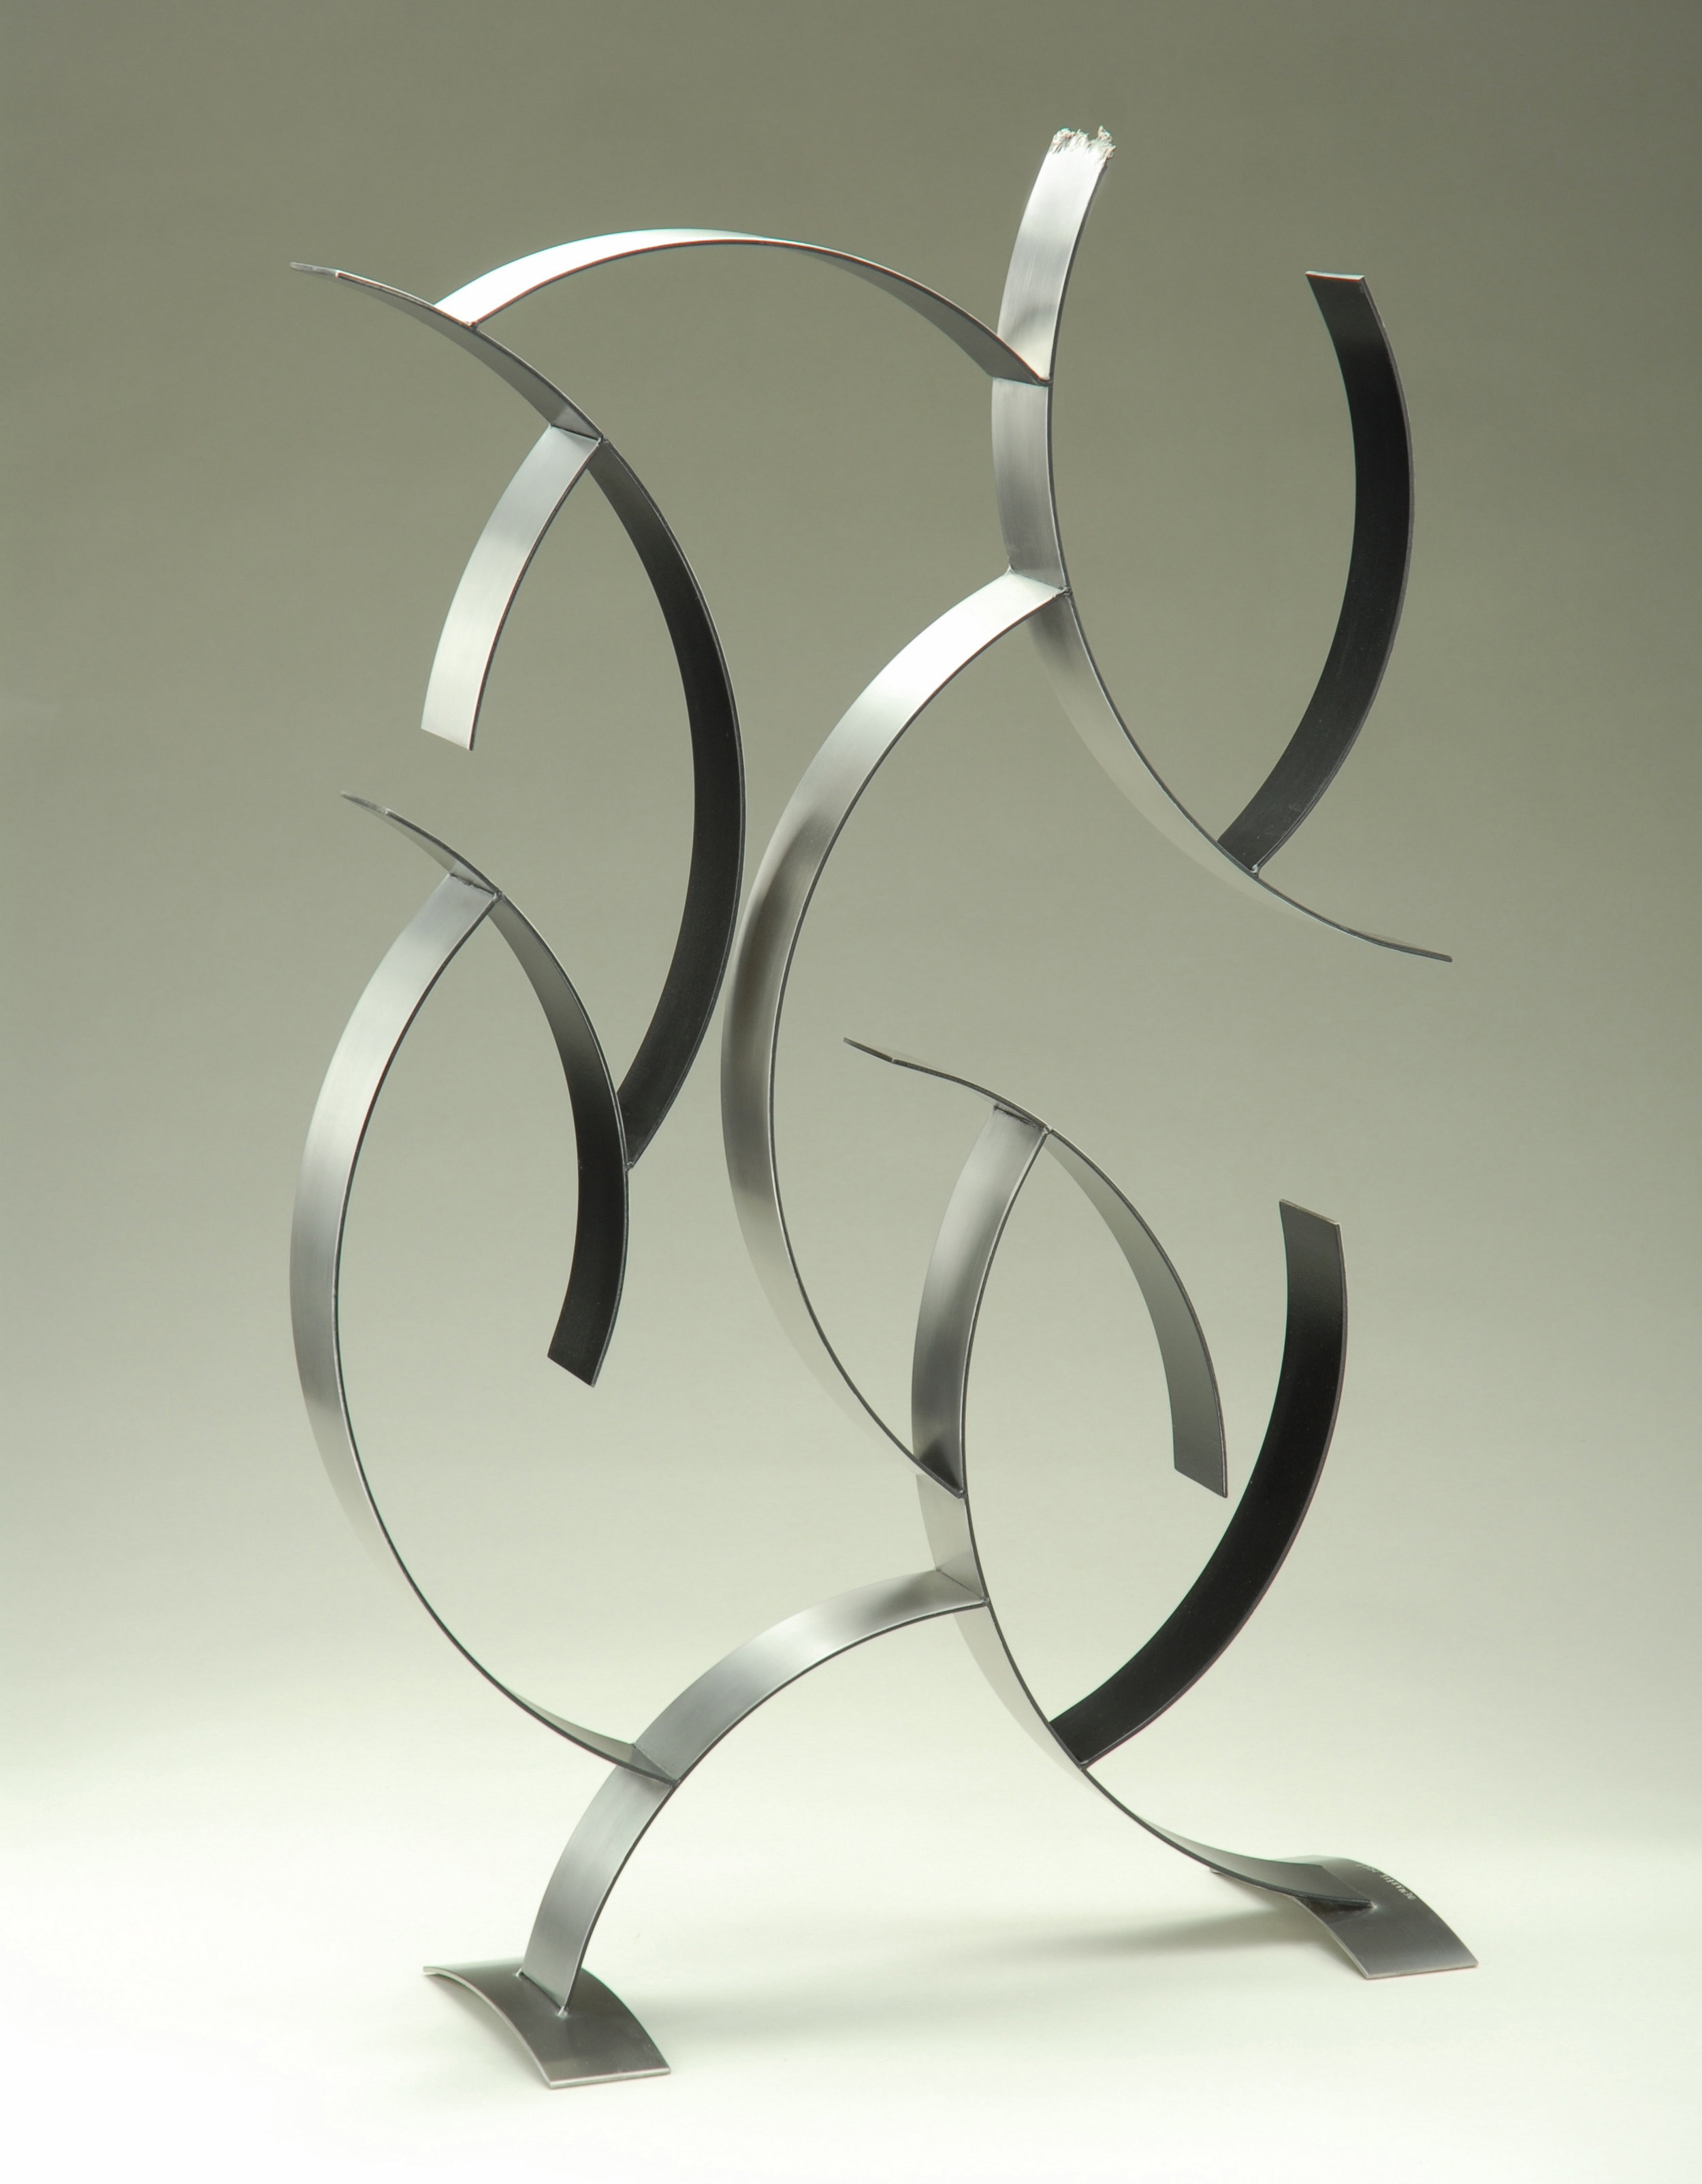 Sea Form, 2009, stainless steel, 32 x 20 x 4 in, $2,200